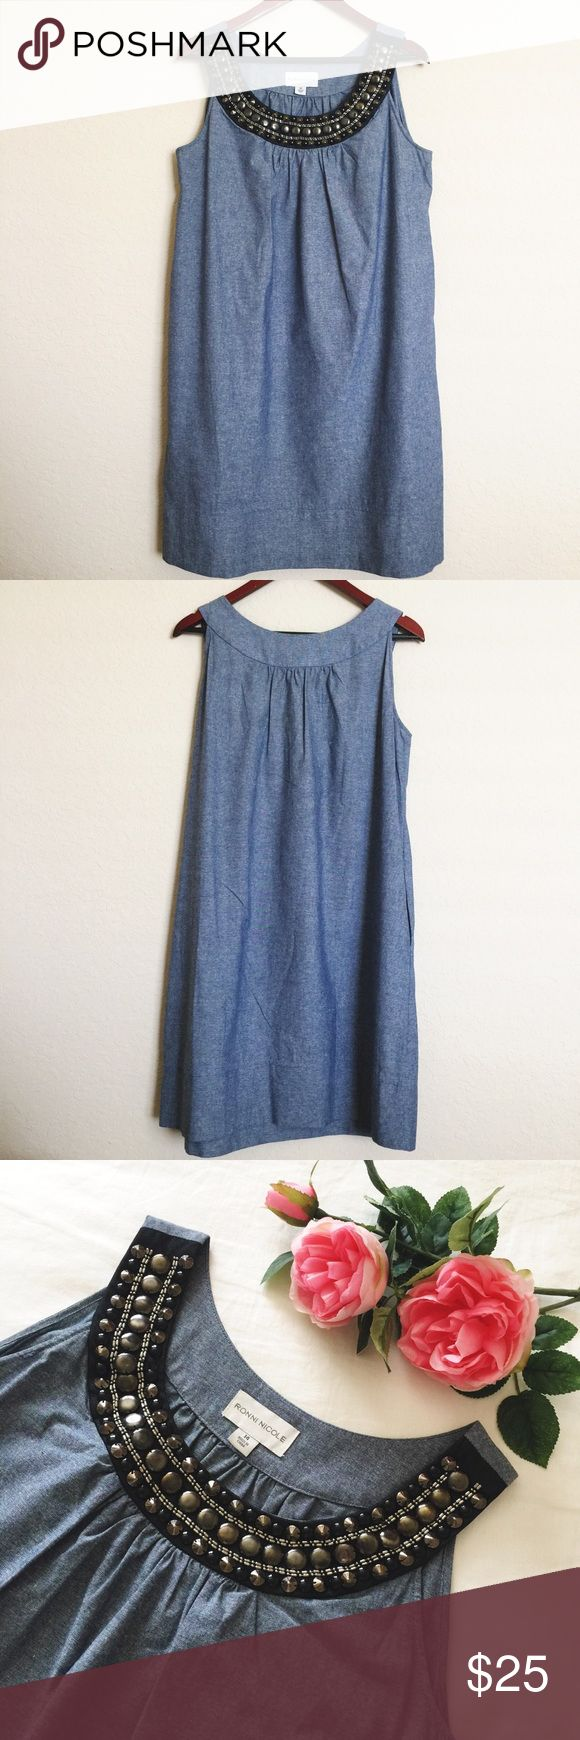 """Ronni Nicole studded collar chambray dress Gorgeous studded collar chambray dress by Ronni Nicole. Size 14. Measures: armpit to armpit 21""""// armpit to bottom 28.5"""". Gently worn and in great condition. Please ask questions 💫 Ronni Nicole Dresses"""